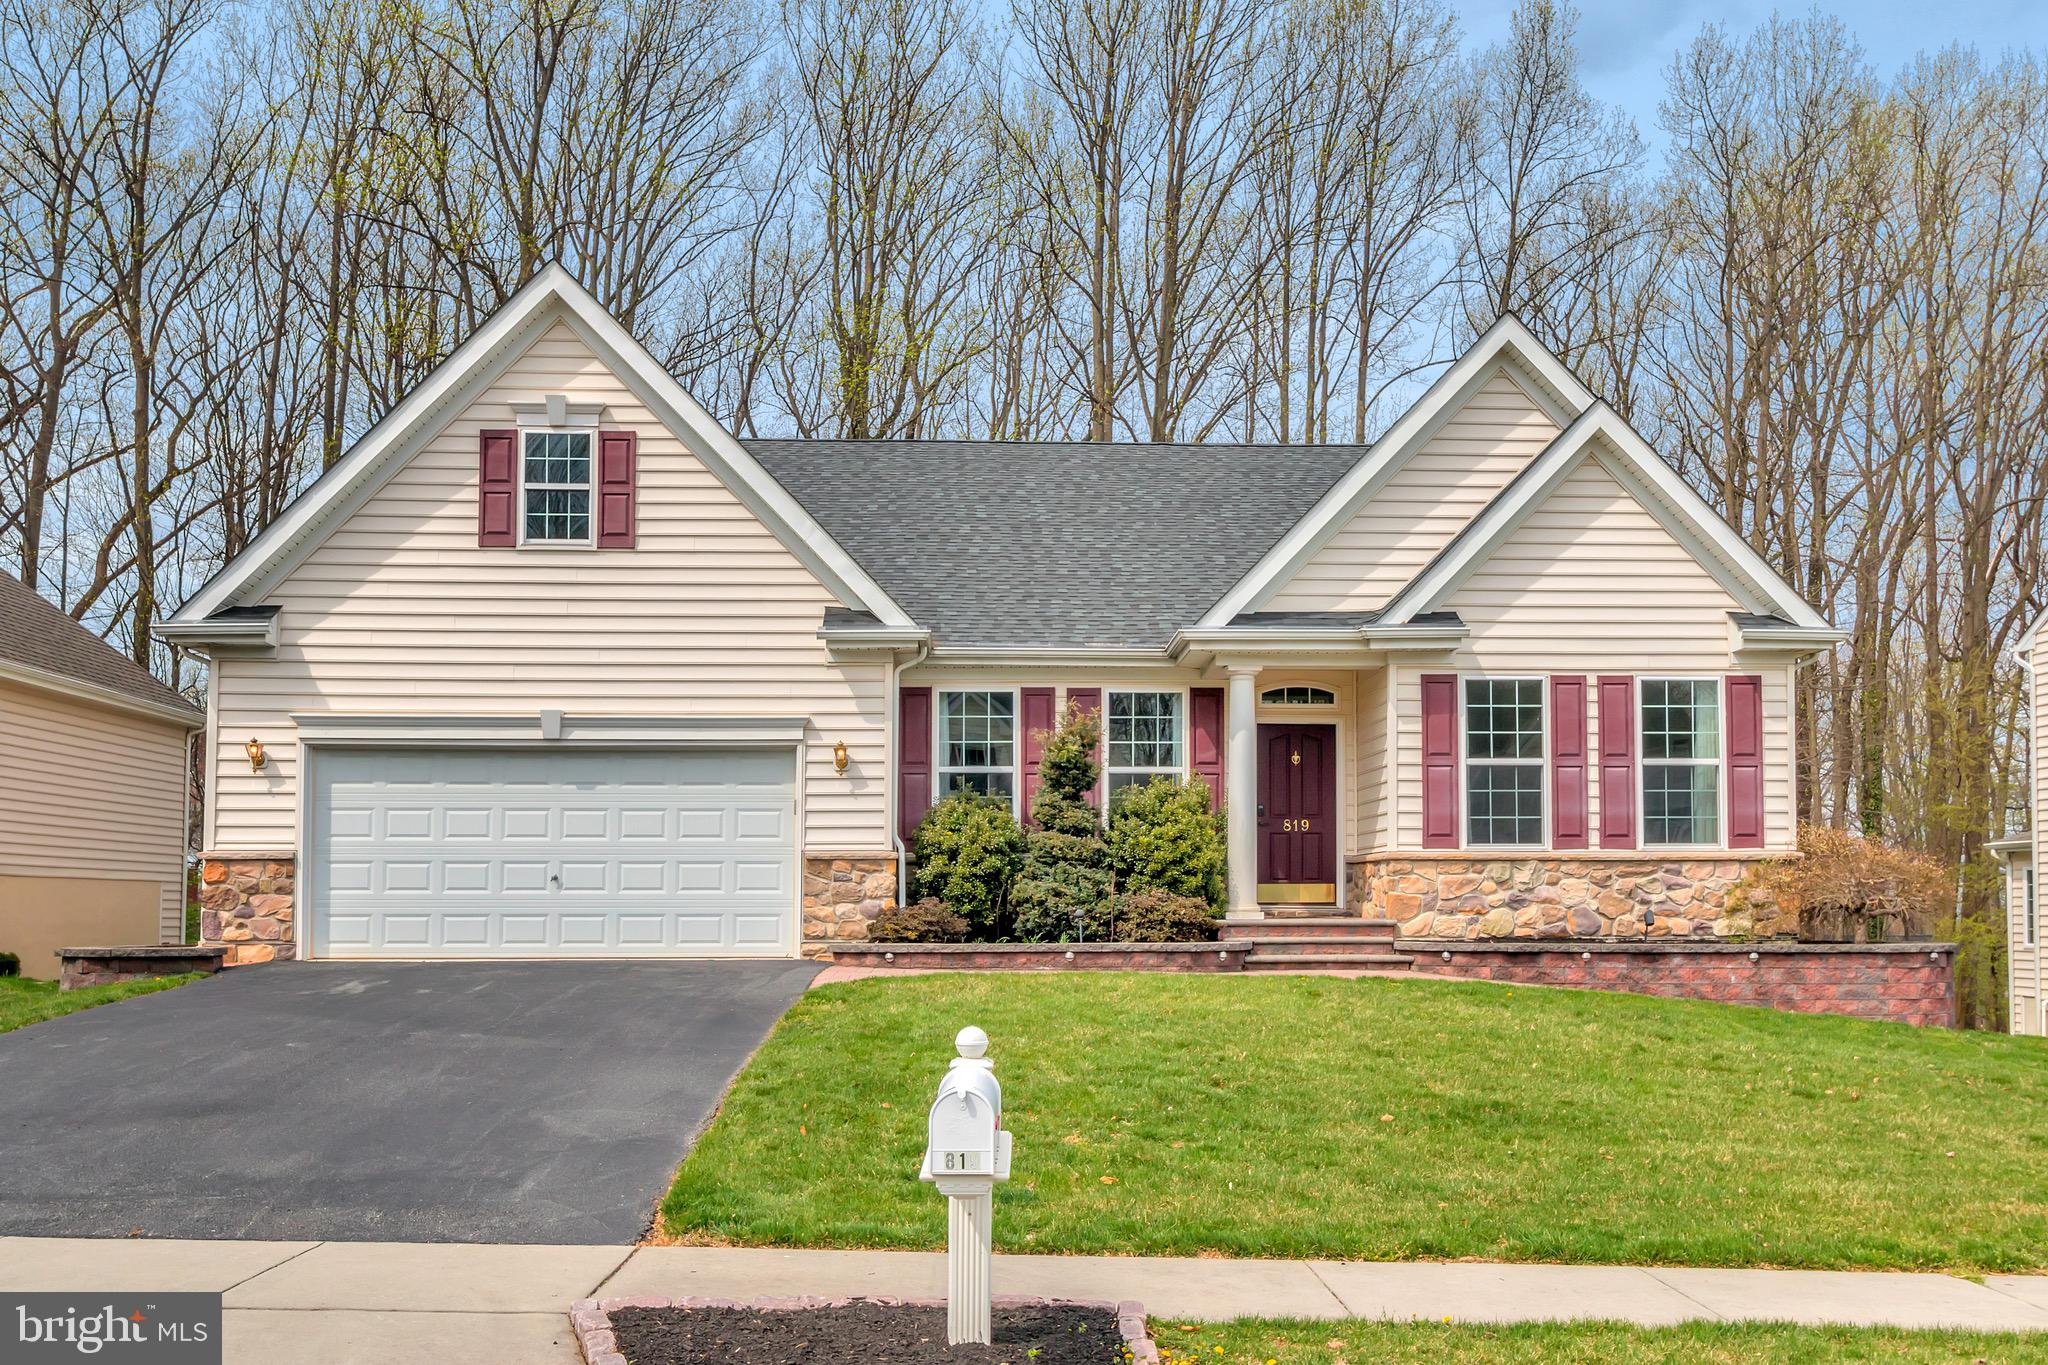 819 COLORADO DRIVE, NEWARK, DE 19713